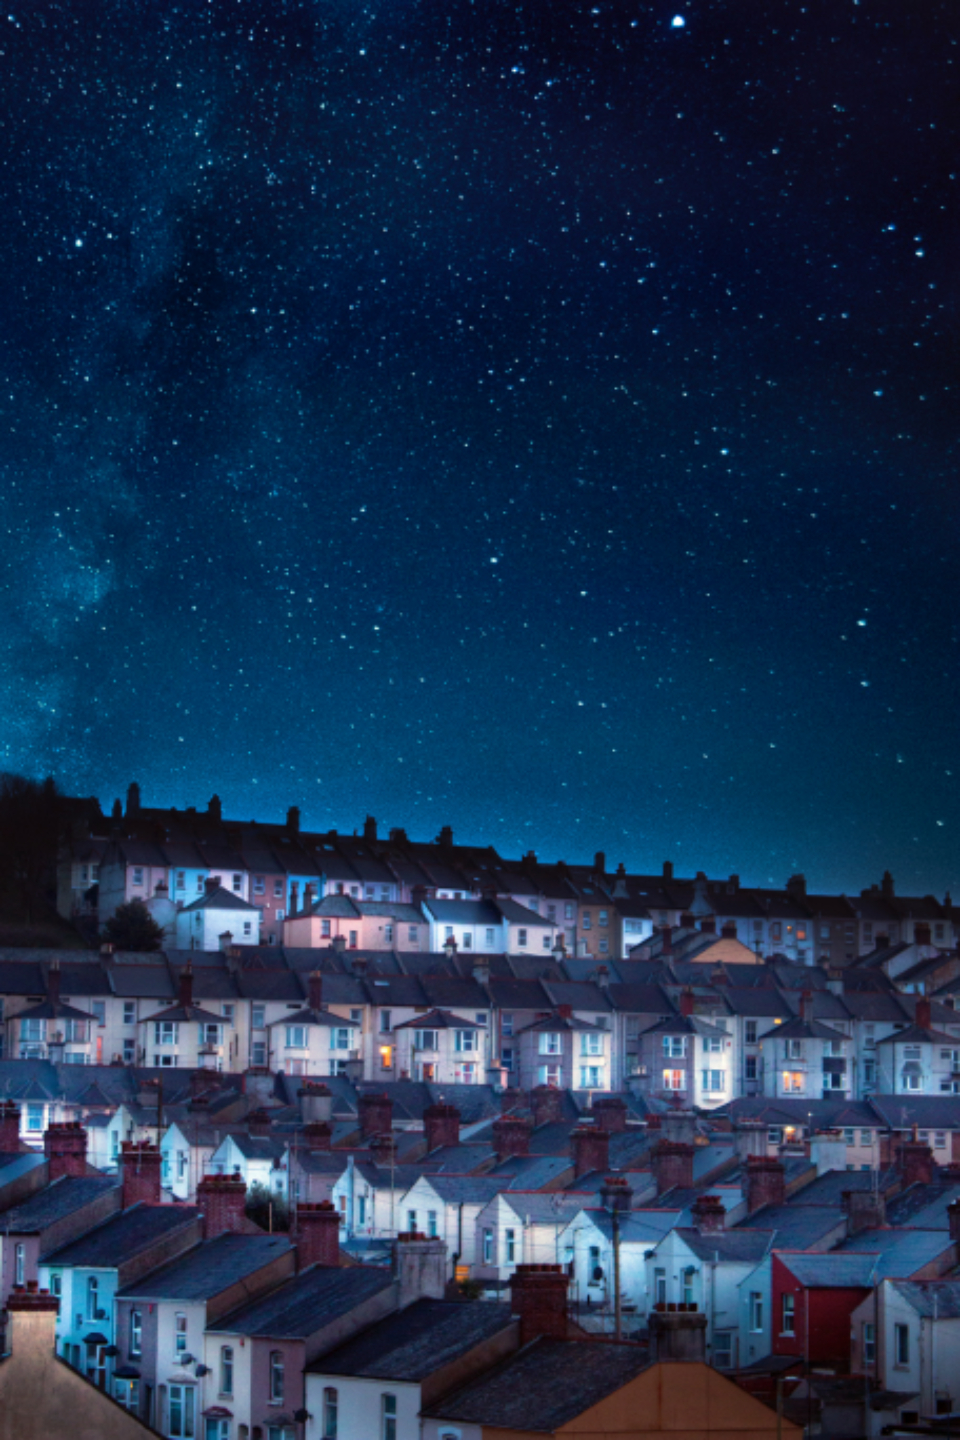 city houses night architecture evening dark dusk landscape night photography night sky sky stars town space